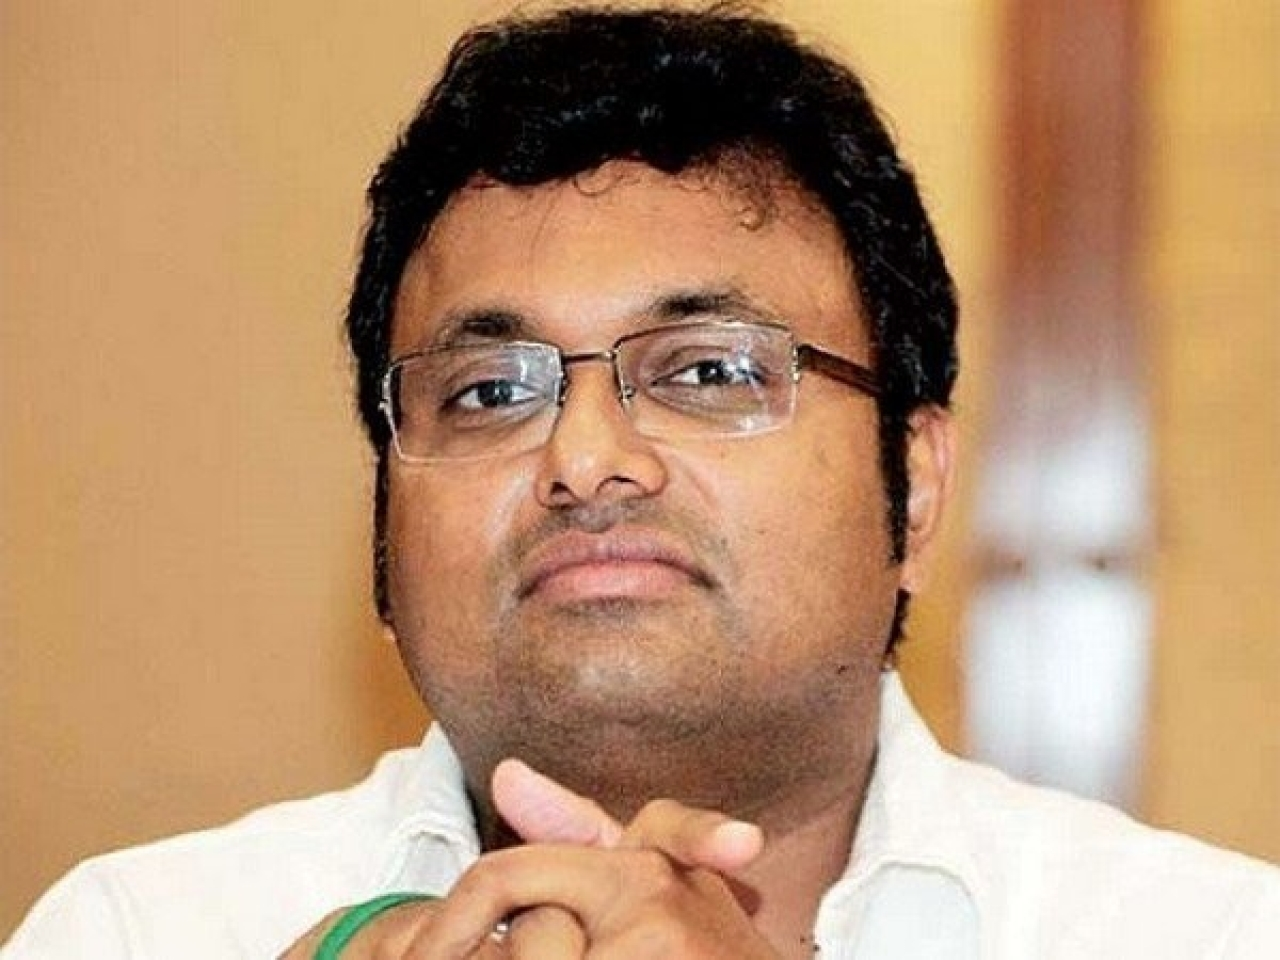 Tax Evasion Case Against Karti Chidamabaram: Madras HC Judge Agrees To Step Aside As She Was Once A Lawyer For Karti's Firm